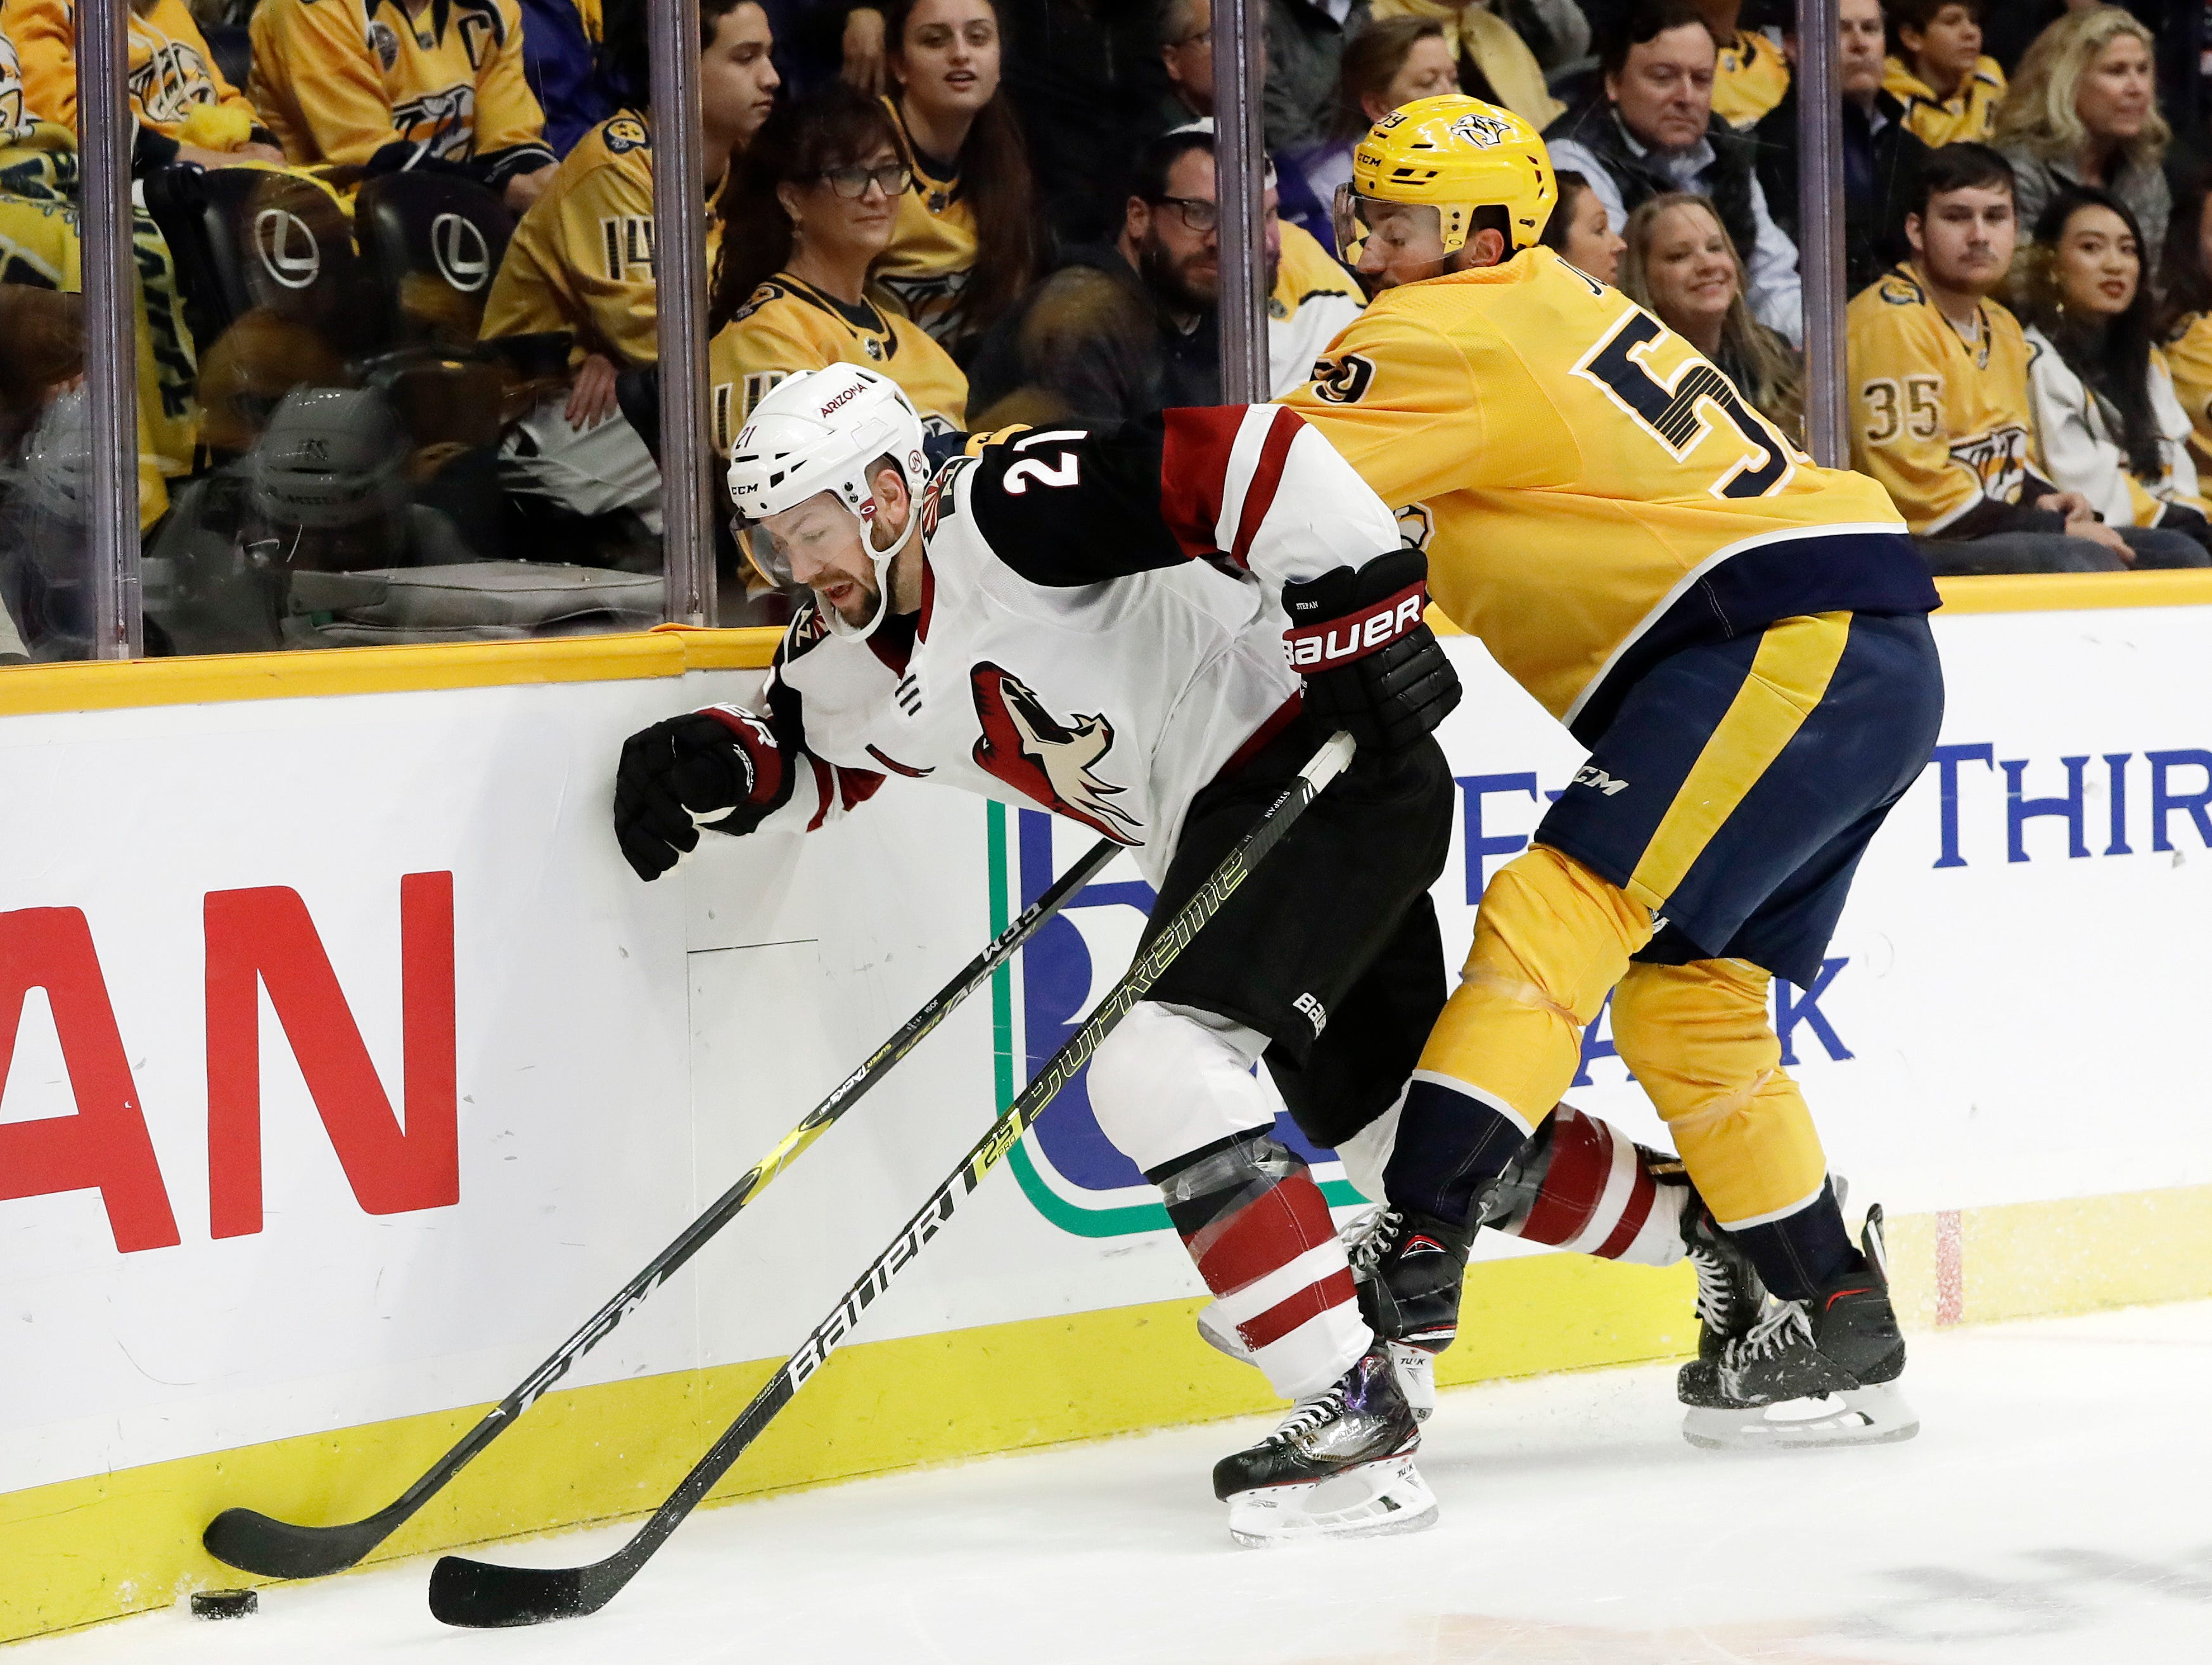 Arizona Coyotes center Derek Stepan (21) and Nashville Predators defenseman Roman Josi (59), of Switzerland, chase down the puck during the first period of an NHL hockey game Thursday, Nov. 29, 2018, in Nashville, Tenn. (AP Photo/Mark Humphrey)